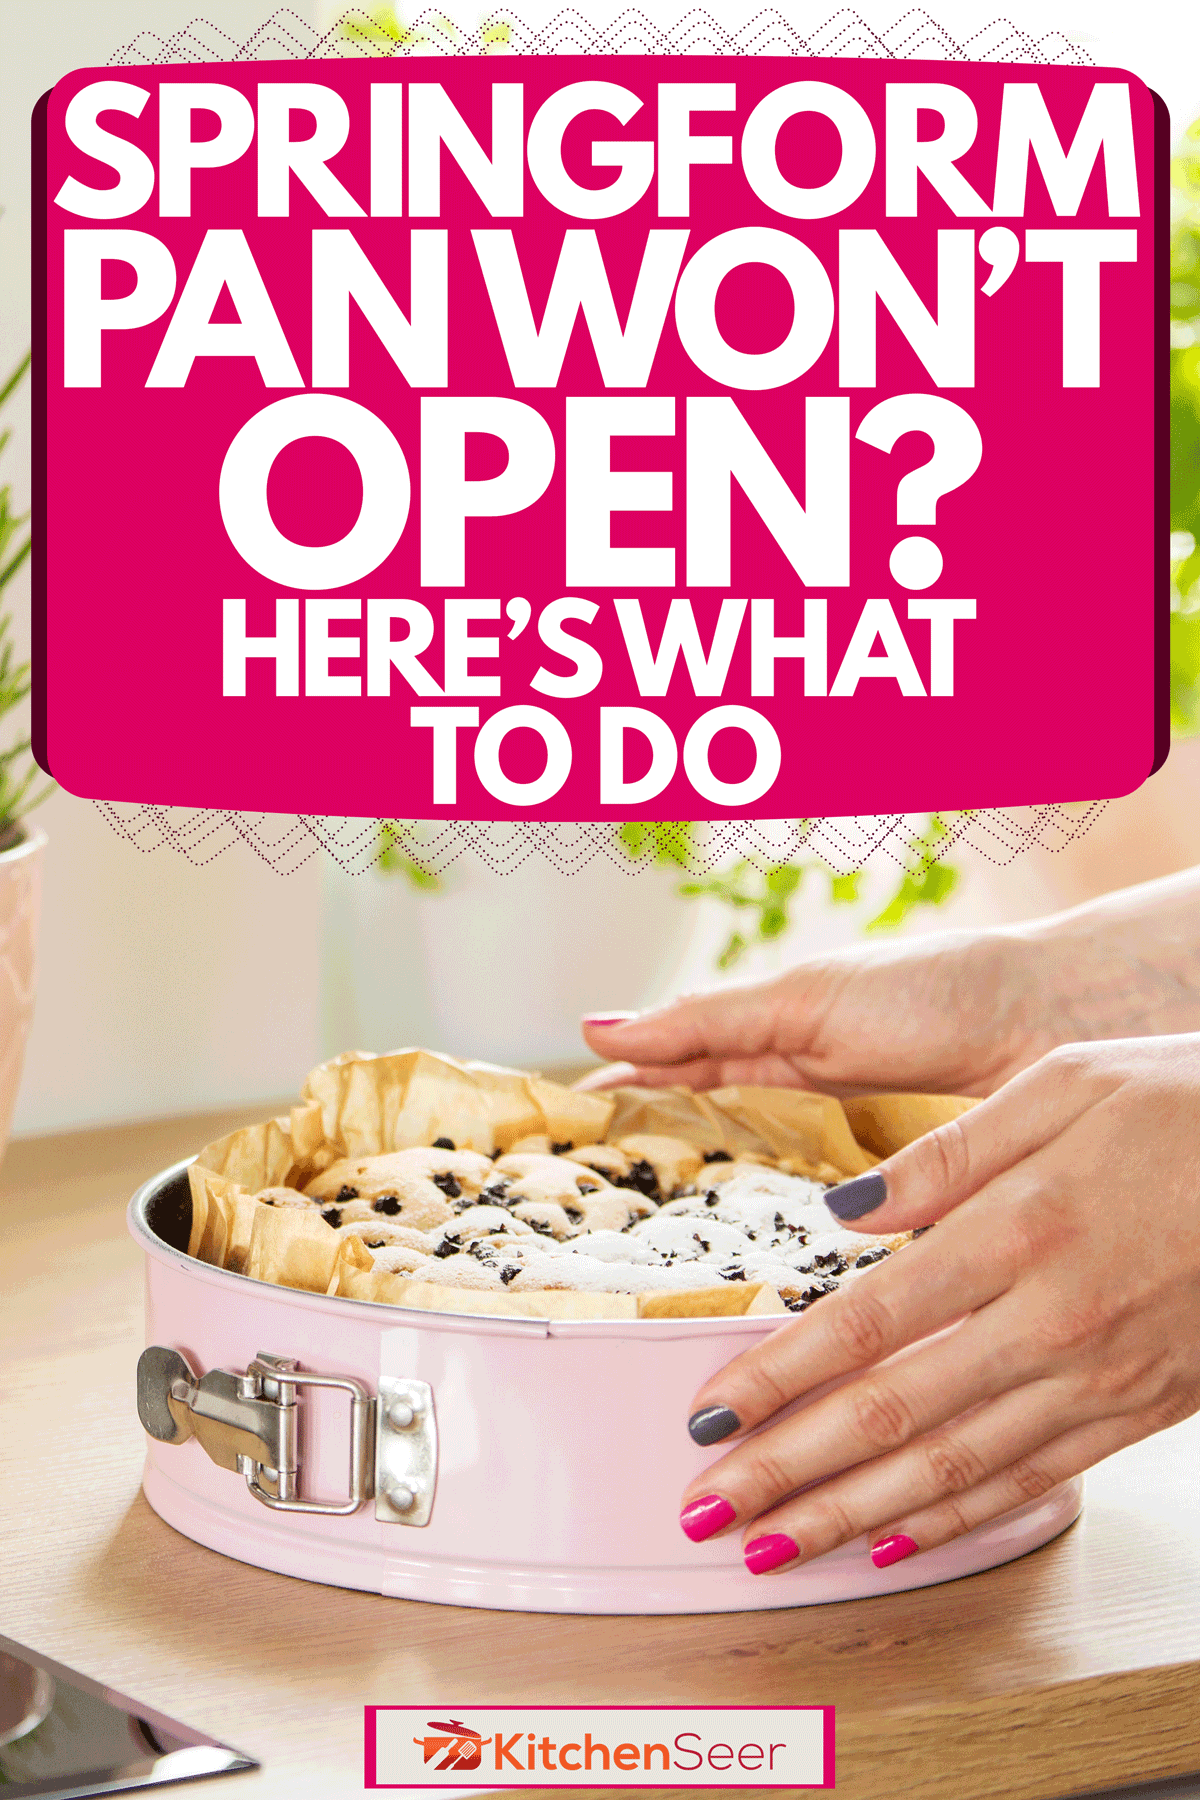 A woman opening a pink springform pan with freshly baked bread, Springform Pan Won't Open? Here's What To Do